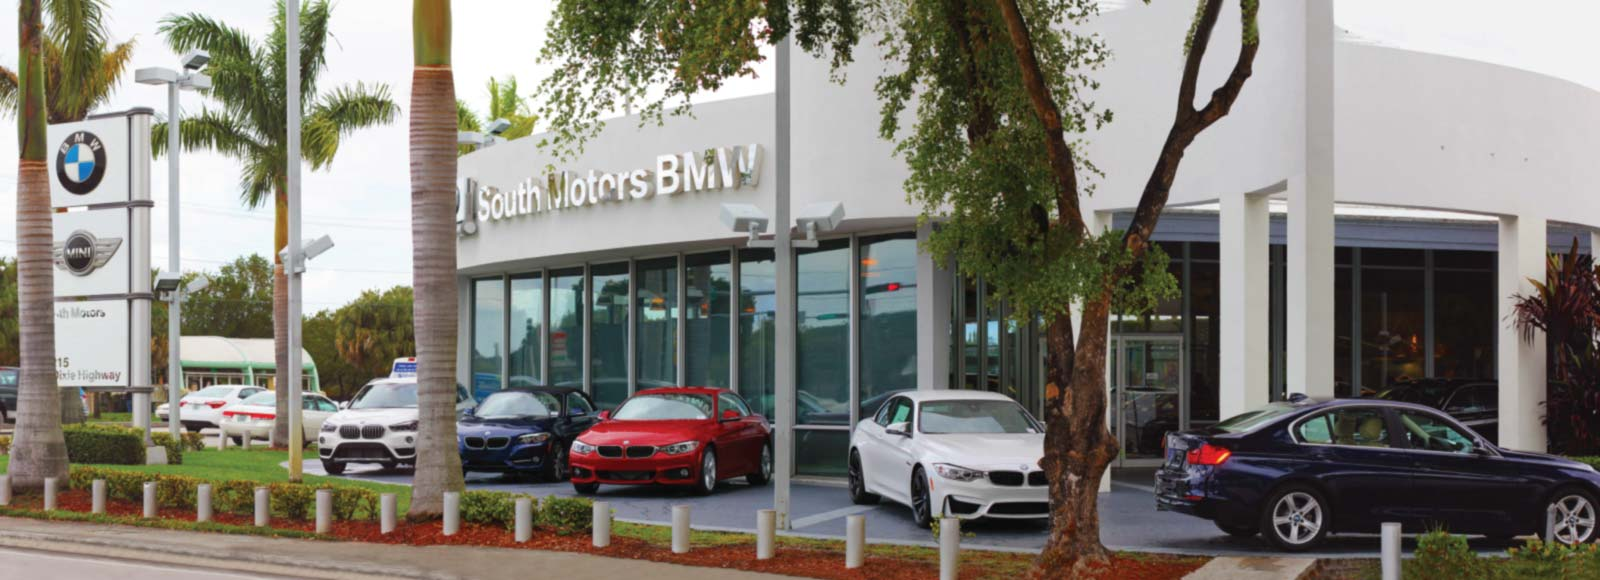 About South Motors Bmw In Miami